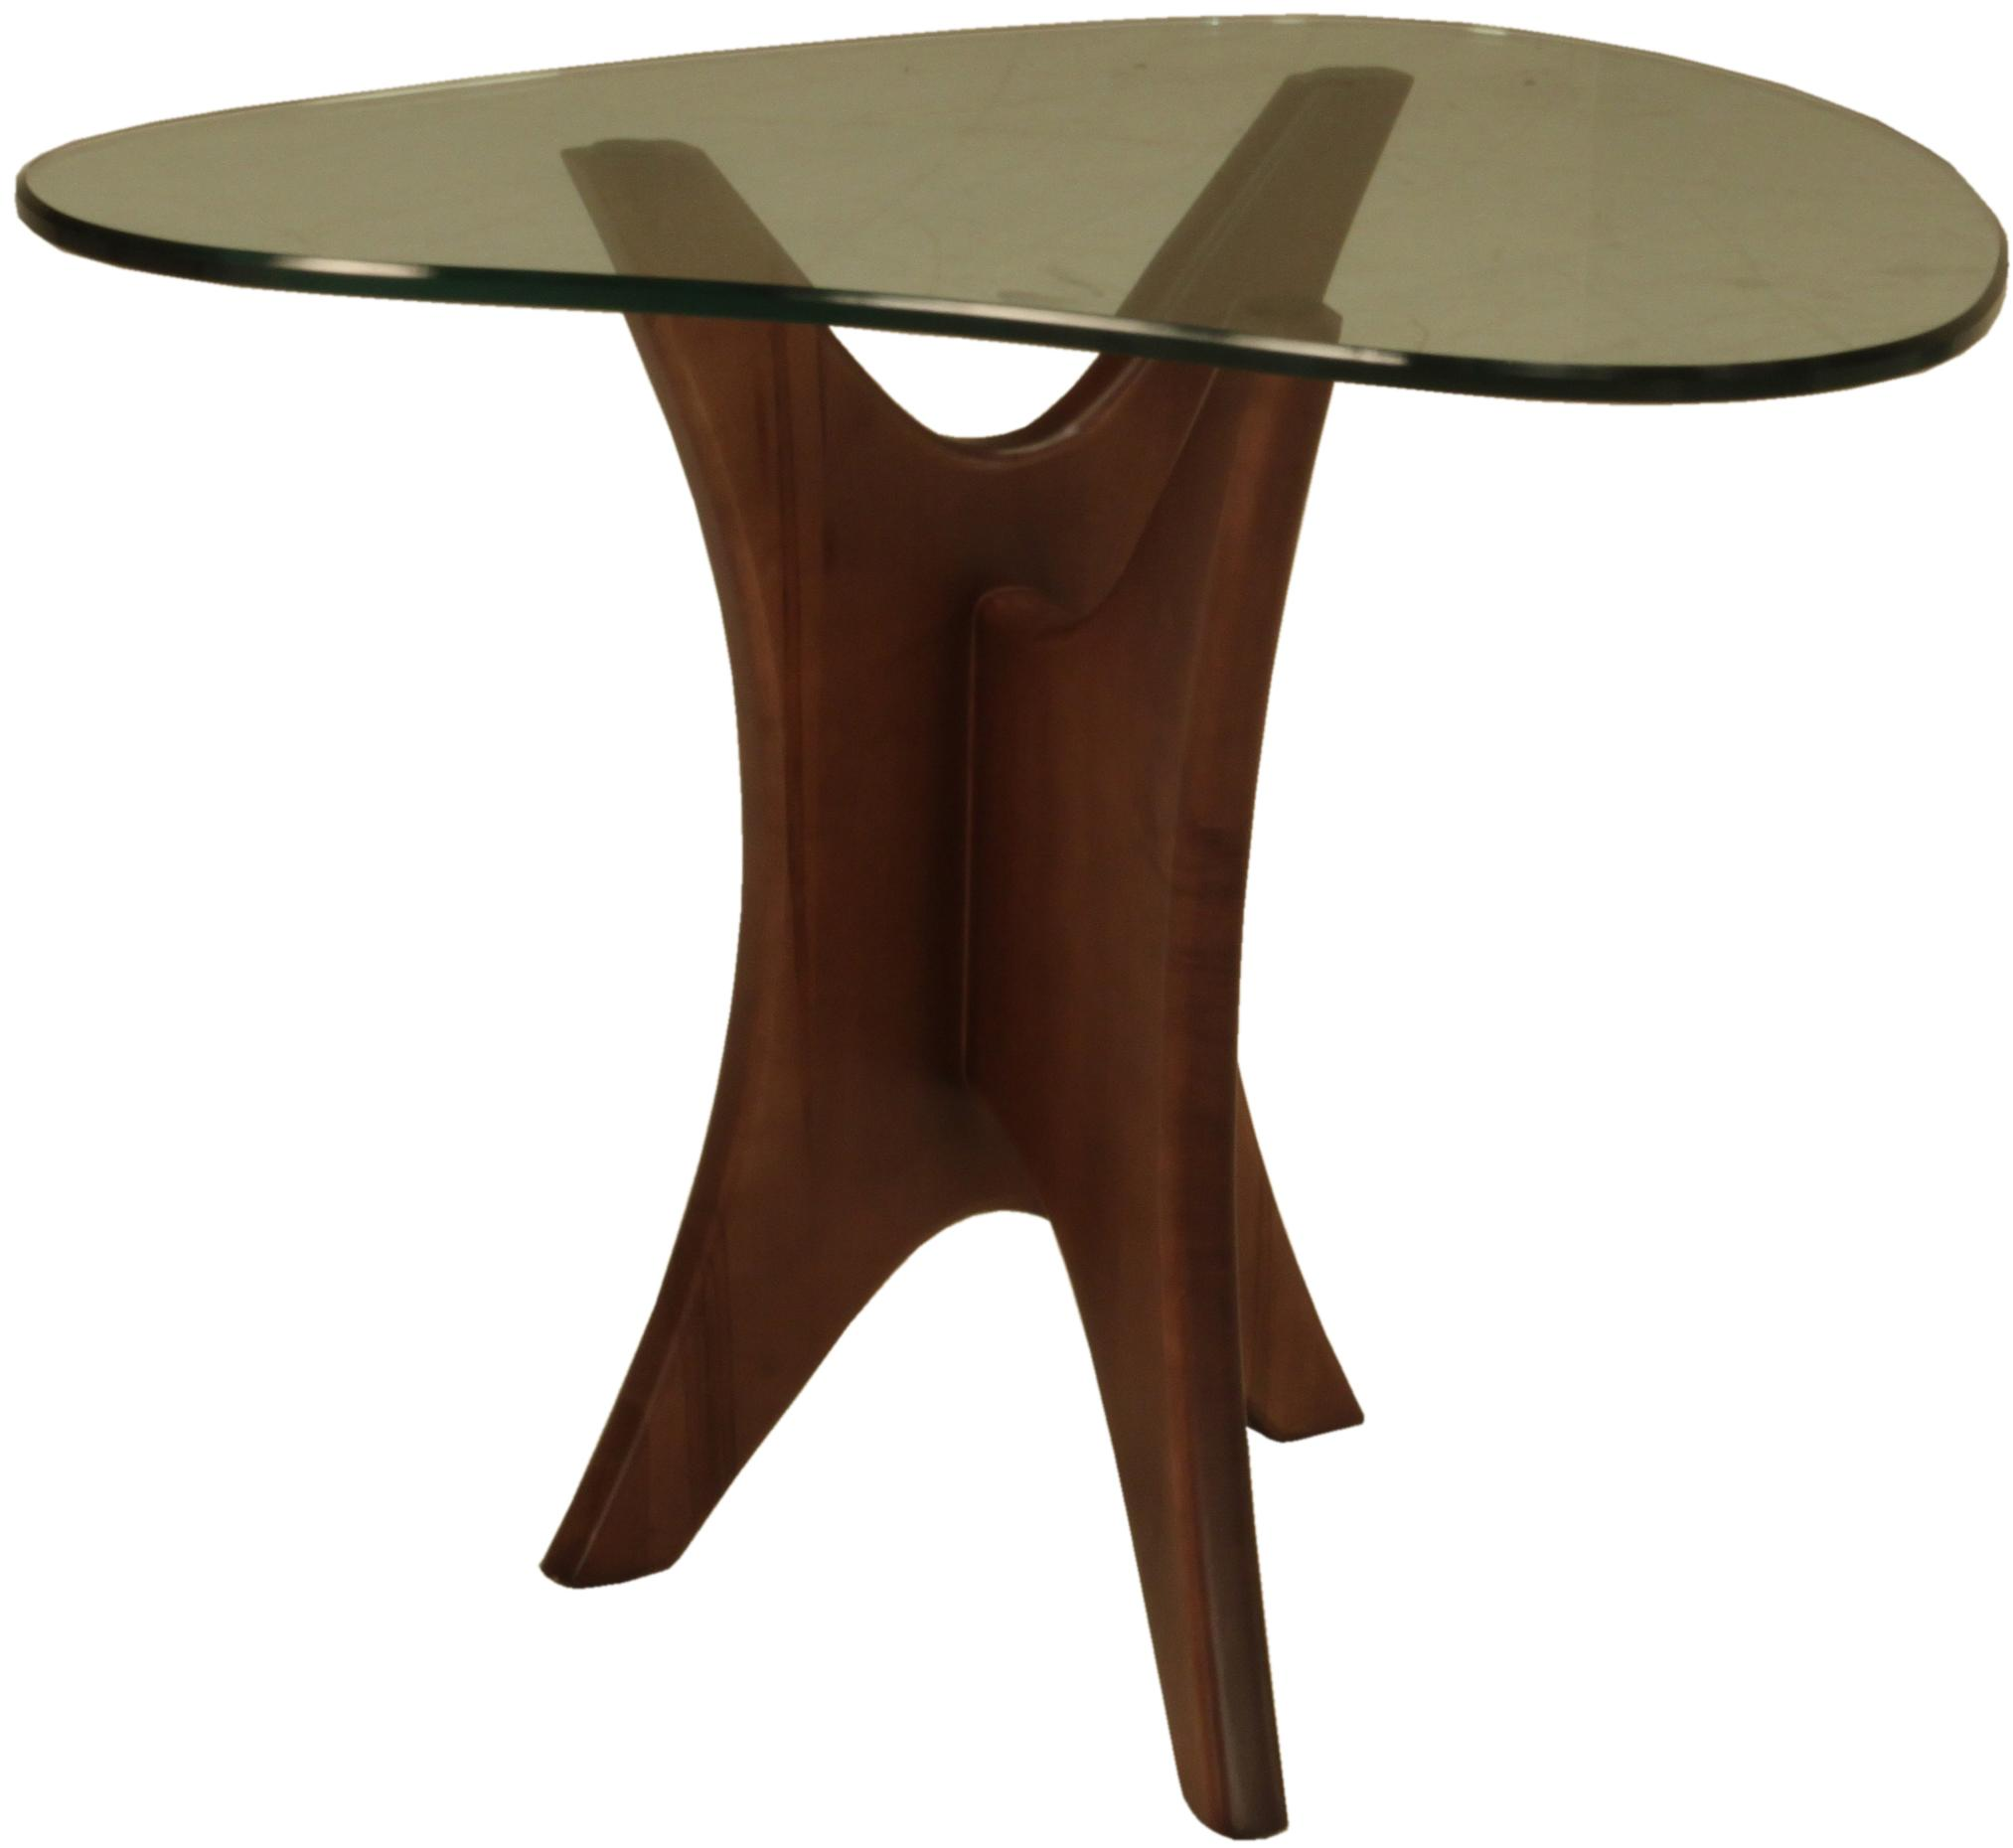 McCreary Modern Occasional Tables Boomerang End Table - Item Number: 06ET-29B